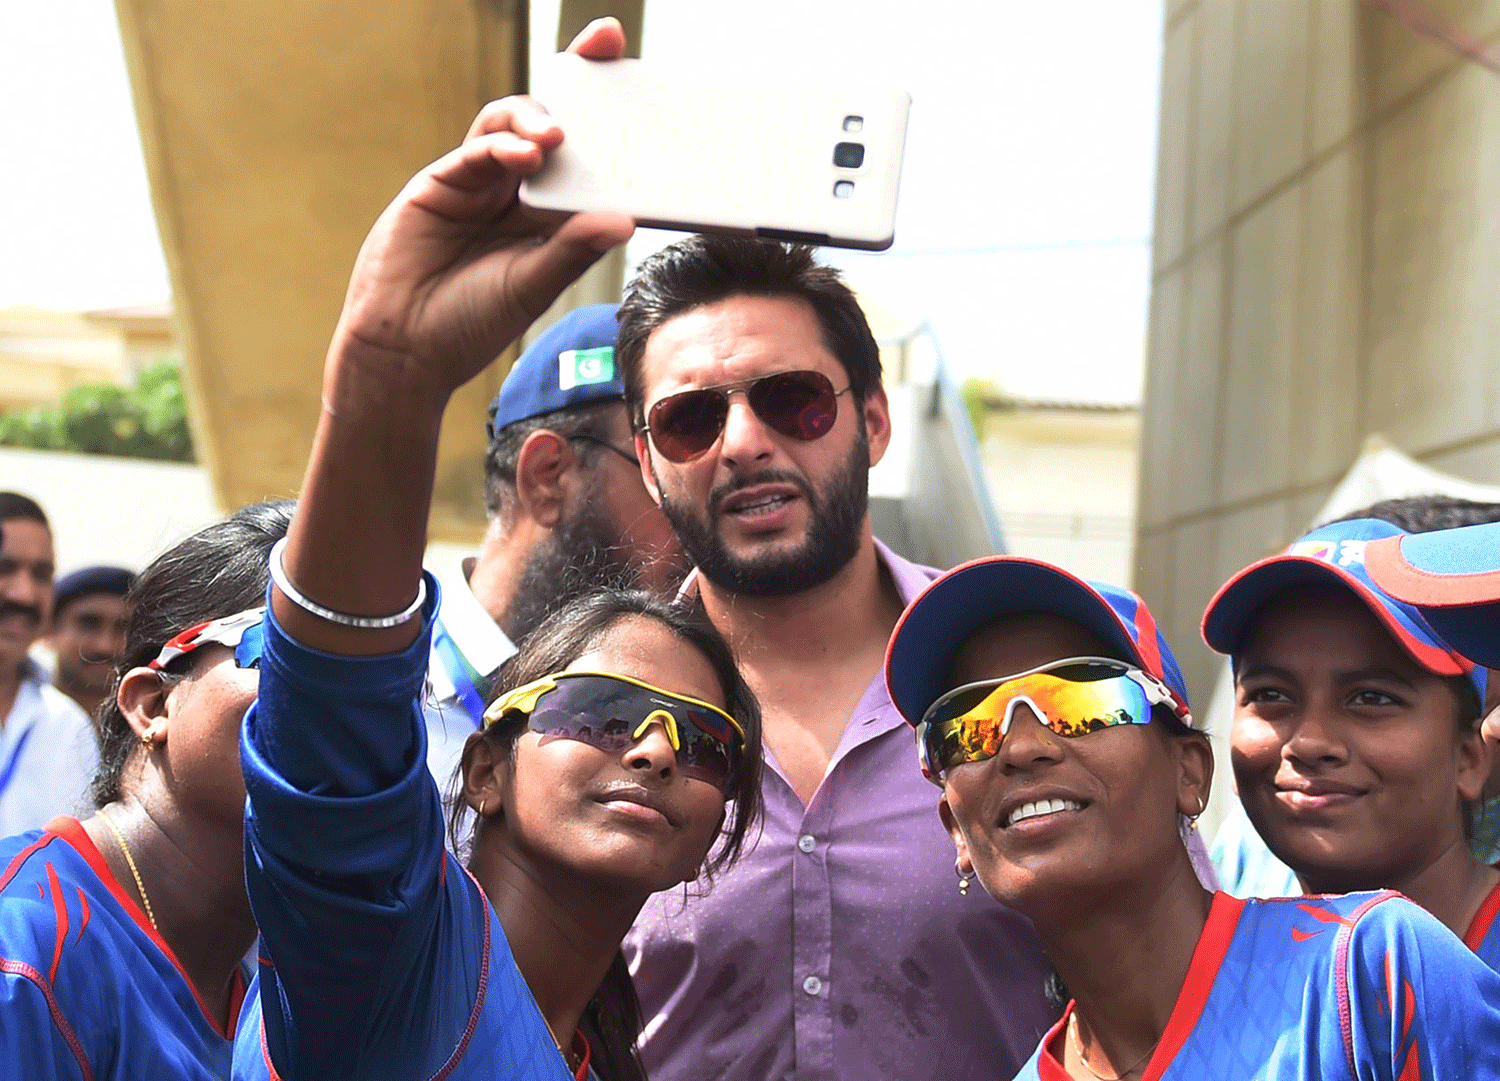 "Members of the Bangladesh team take a selfie with Pakistani cricketer Shahid Afridi (C) in Karachi on October 5, 2015. Pakistani all-rounder Shahid Afridi criticised Australia's decision to call off their Bangladesh tour citing terrorism fears, saying that while security was paramount tours should ""not be cancelled over minor issues"". Australia scrapped its two-Test tour of Bangladesh last week after official warnings militants may attack Western interests. — AFP"